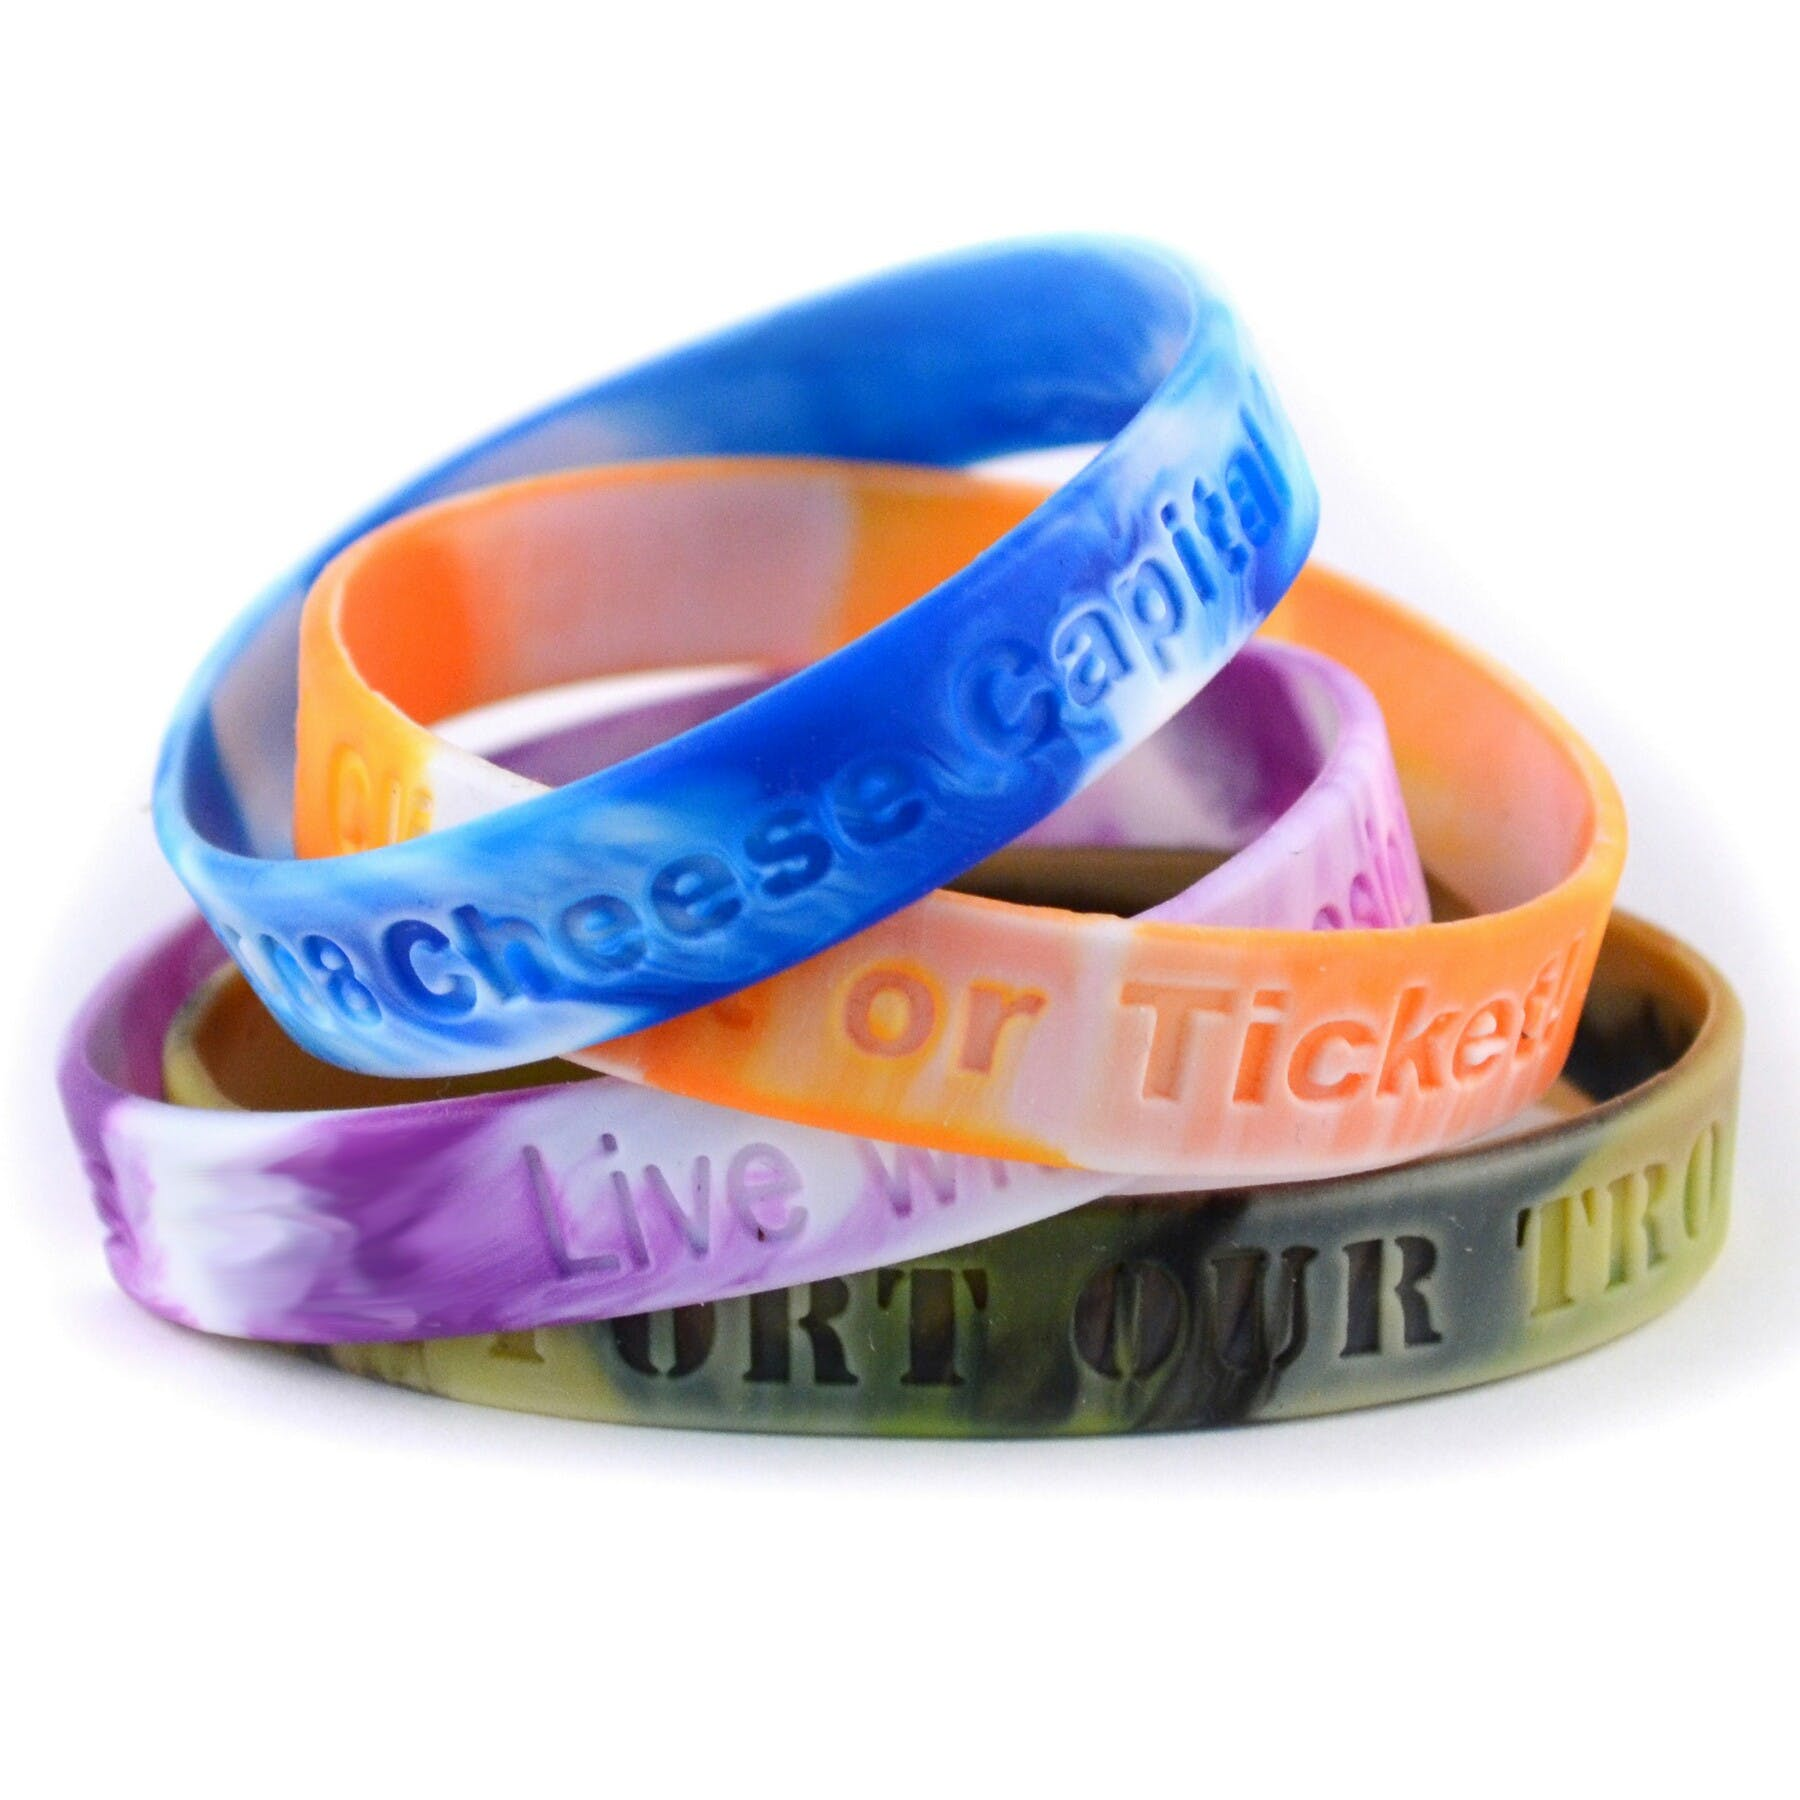 Silicone Wristband (Item # PIFQS-FZKCP) Promotional wristband sold by InkEasy